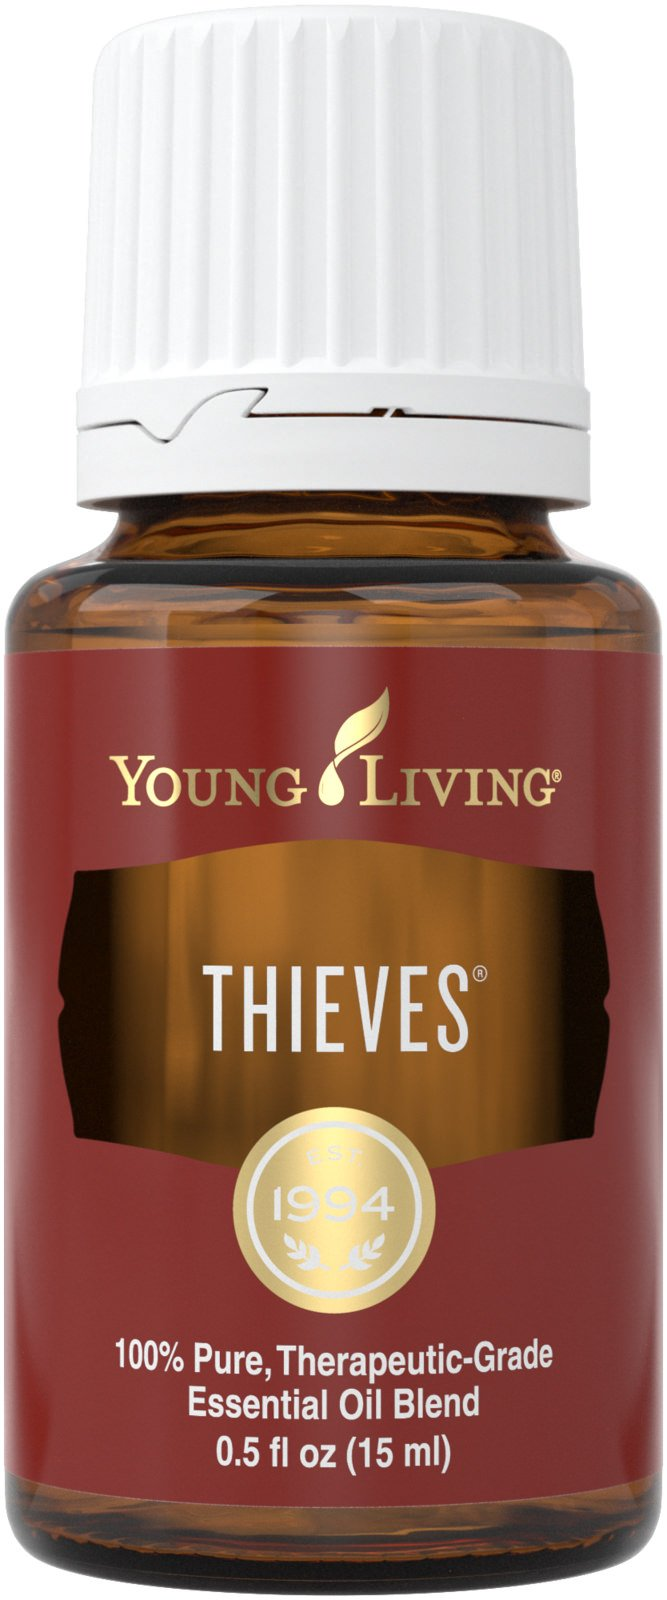 Thieves Essential Oil by Young Living 15ml by Young Living